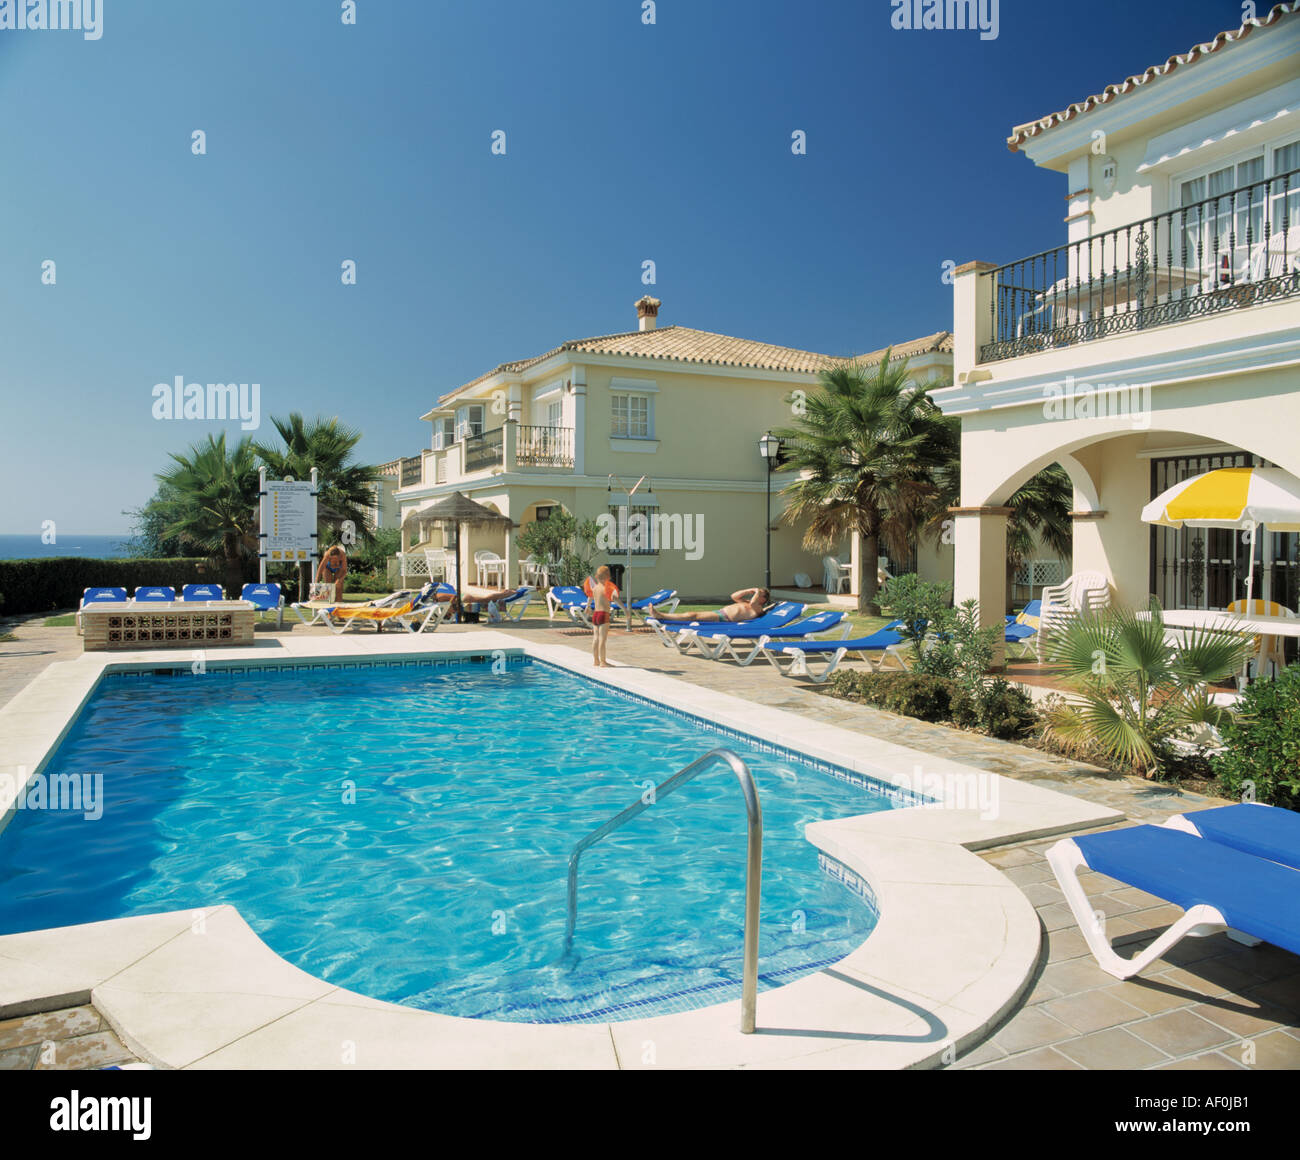 Large Turquoise Swimming Pool In Grounds Of Hotel In Southern Spain Stock Photo Royalty Free